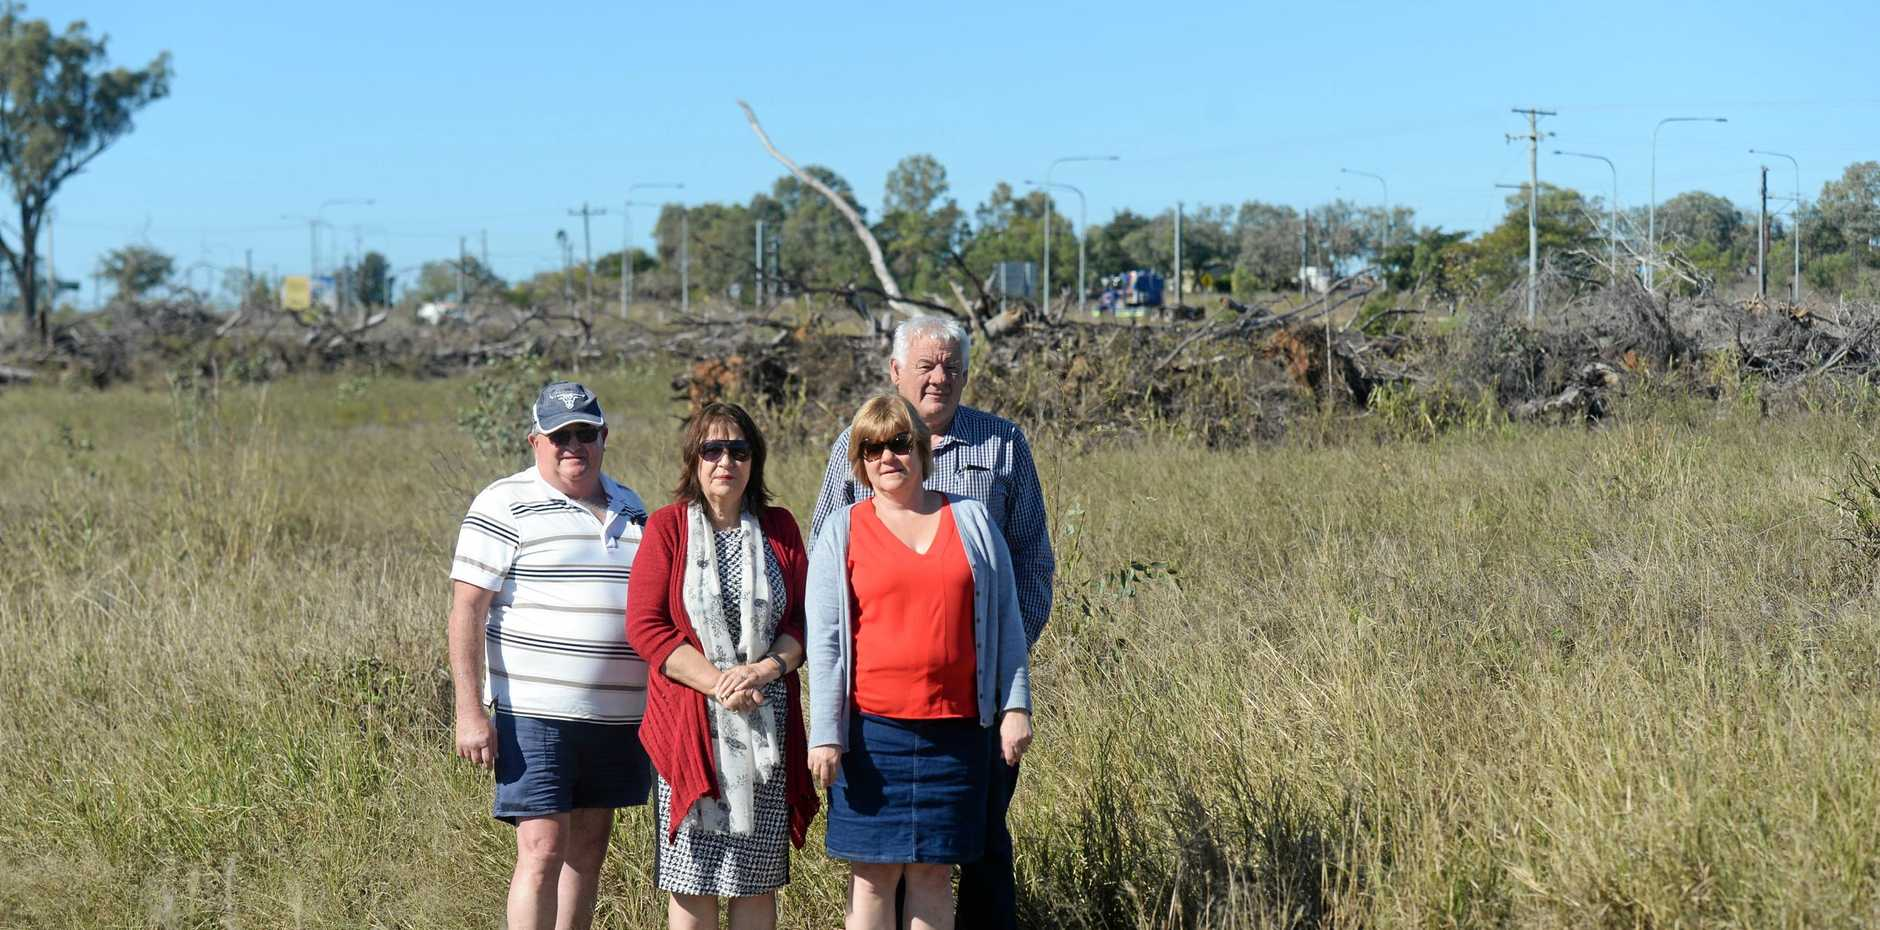 Errol and Linda Rheinberger, Louise Ward, and Paul Kowalski from Gracemere are opposed to a 24/7 service station and truck stop being built on this vacant block of land near the Gracemere Overpass. They are concerned about flooding (inset shows water over the site in 2013) and heavy trucks turning.